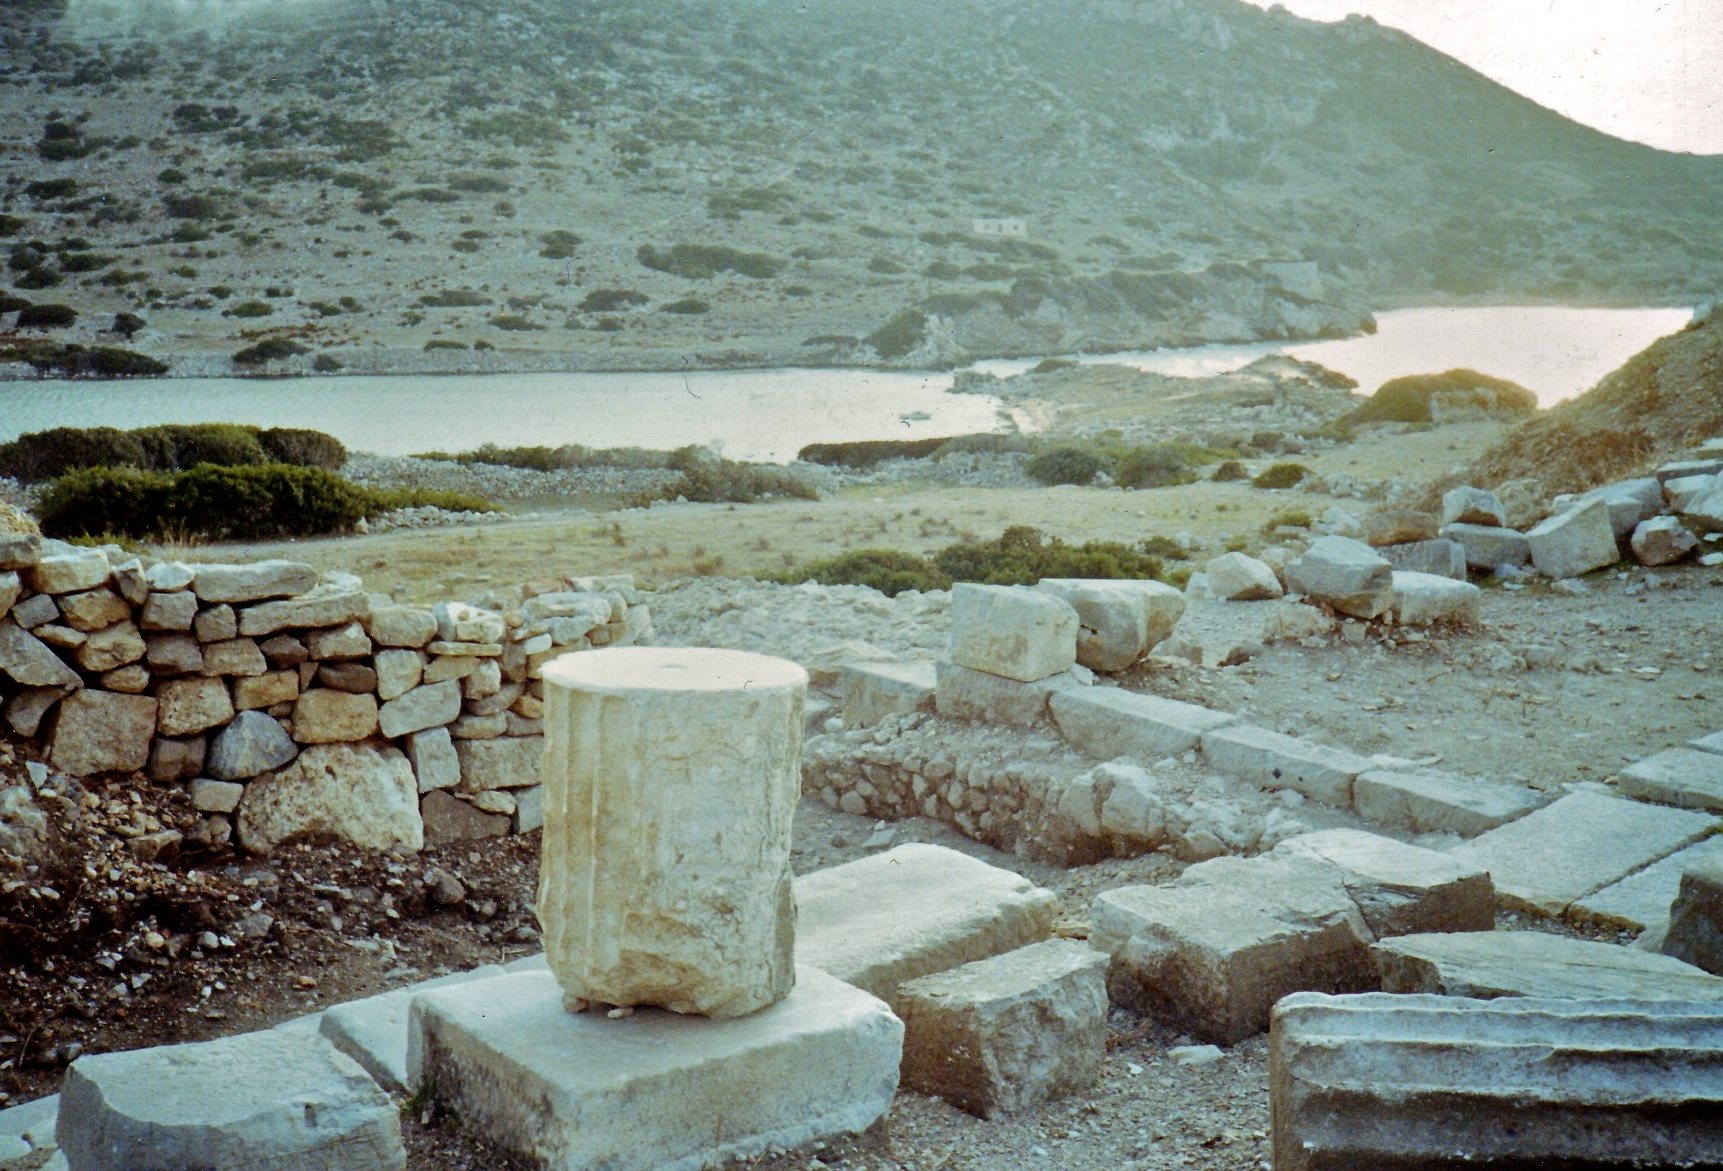 The one photo I took at Knidos in 1989